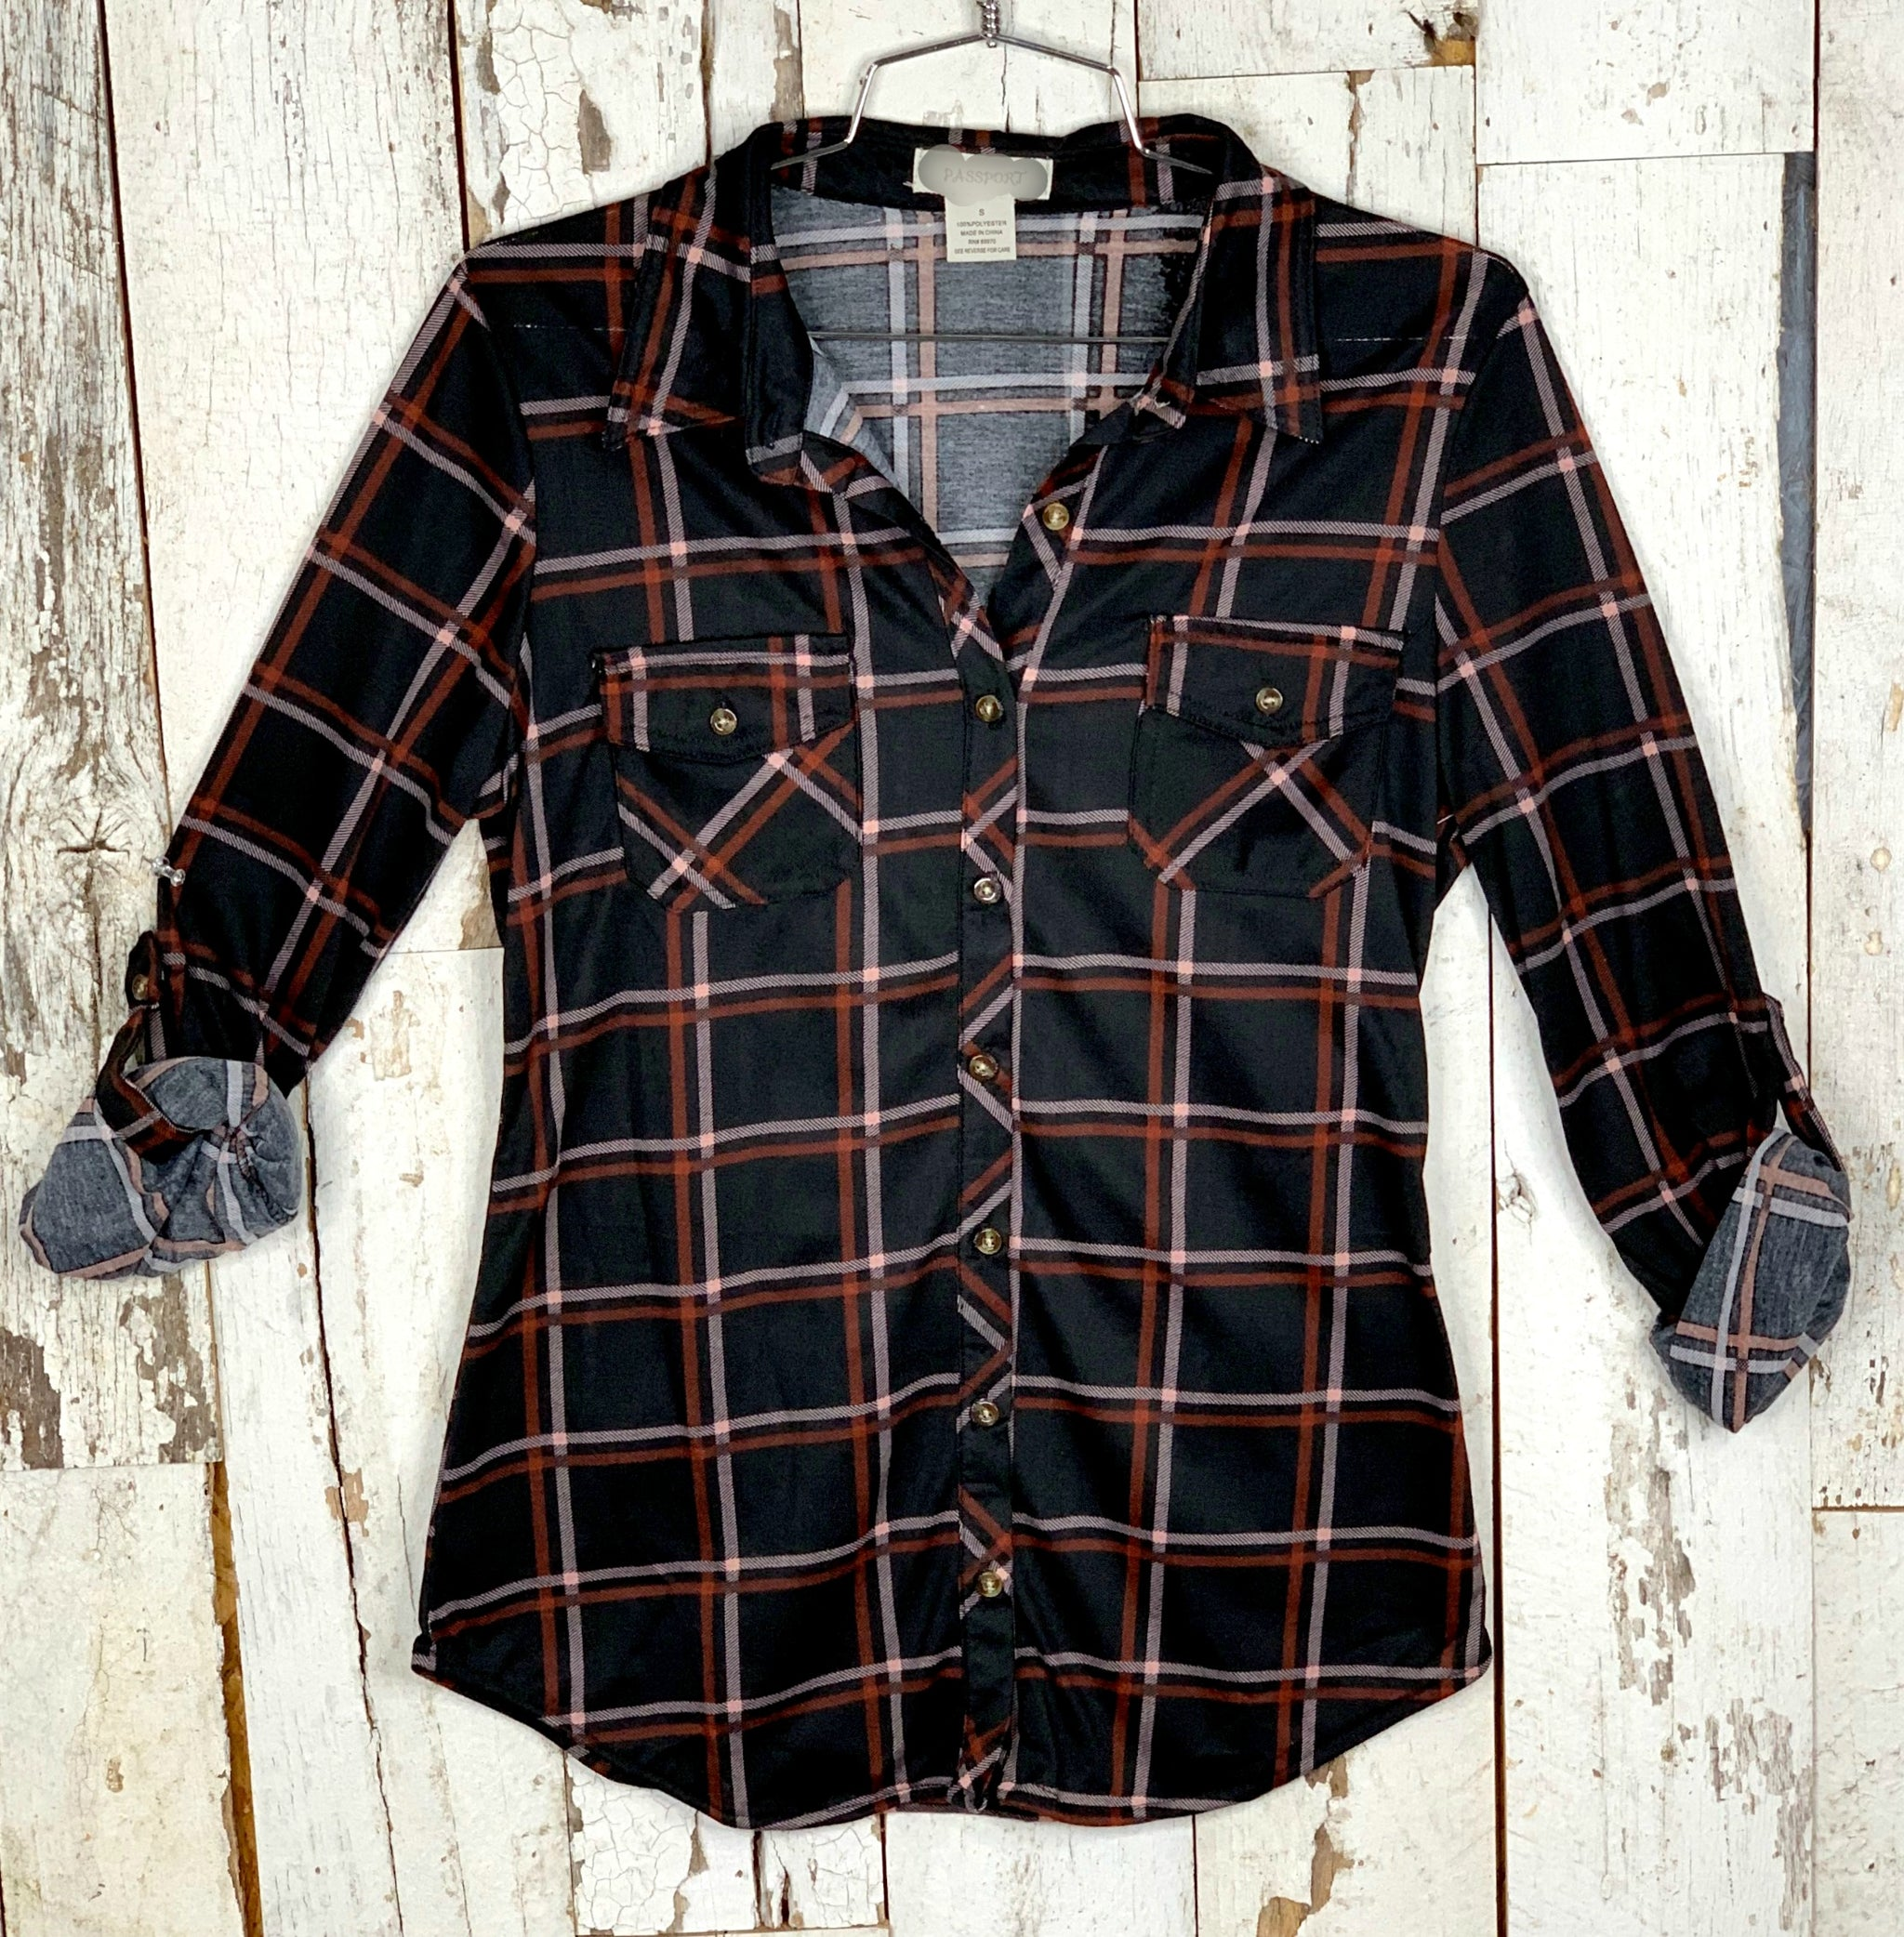 Penny Plaid Flannel Top - Black Poppy